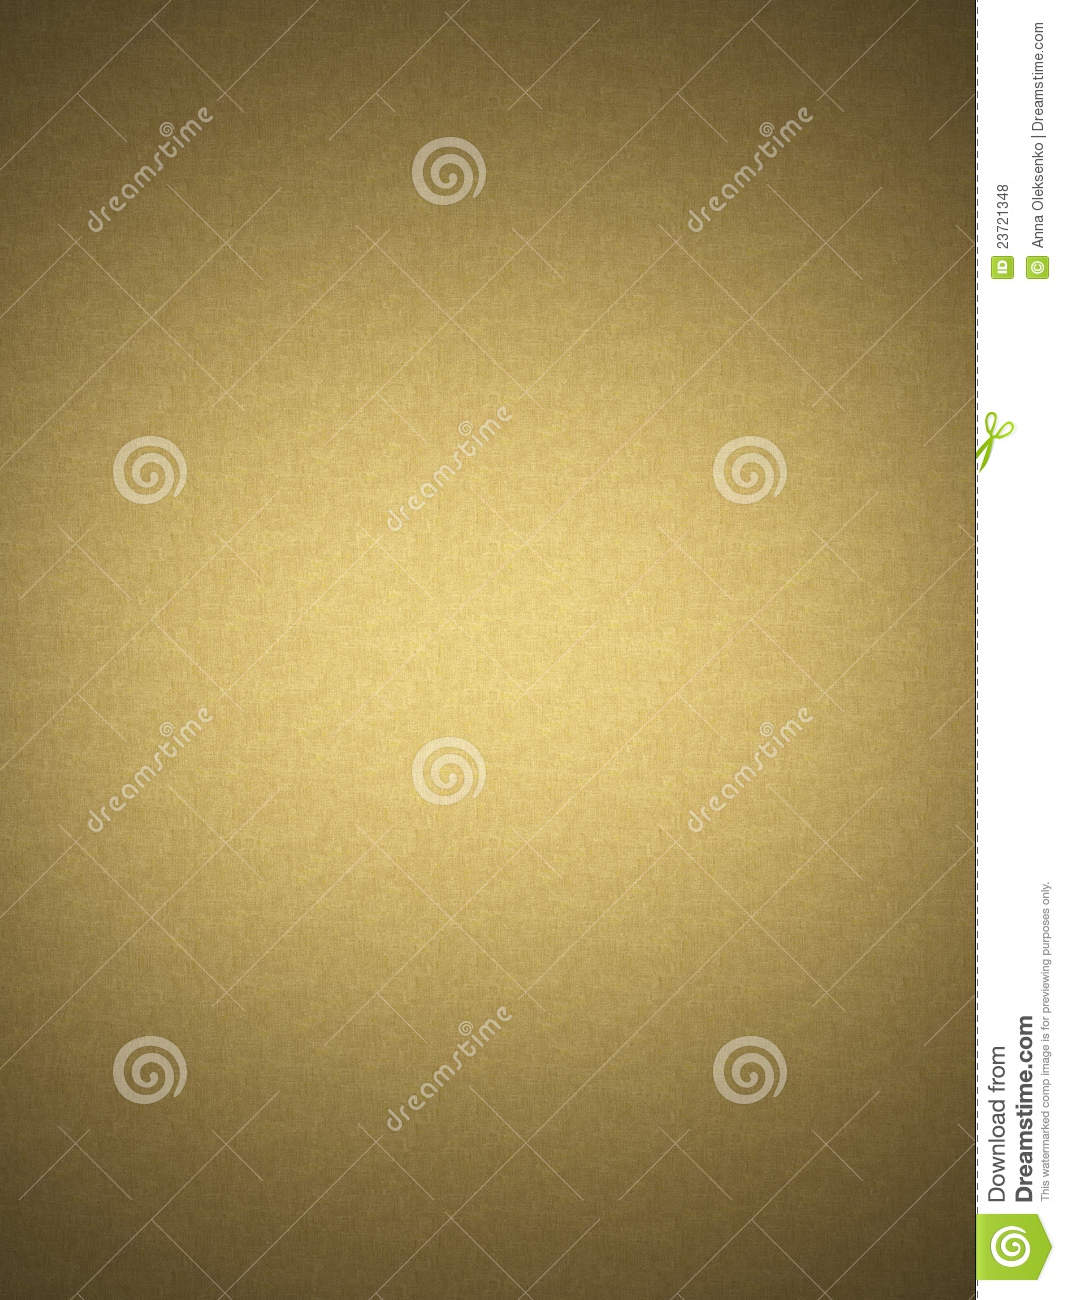 Brown canvas texture, or background.